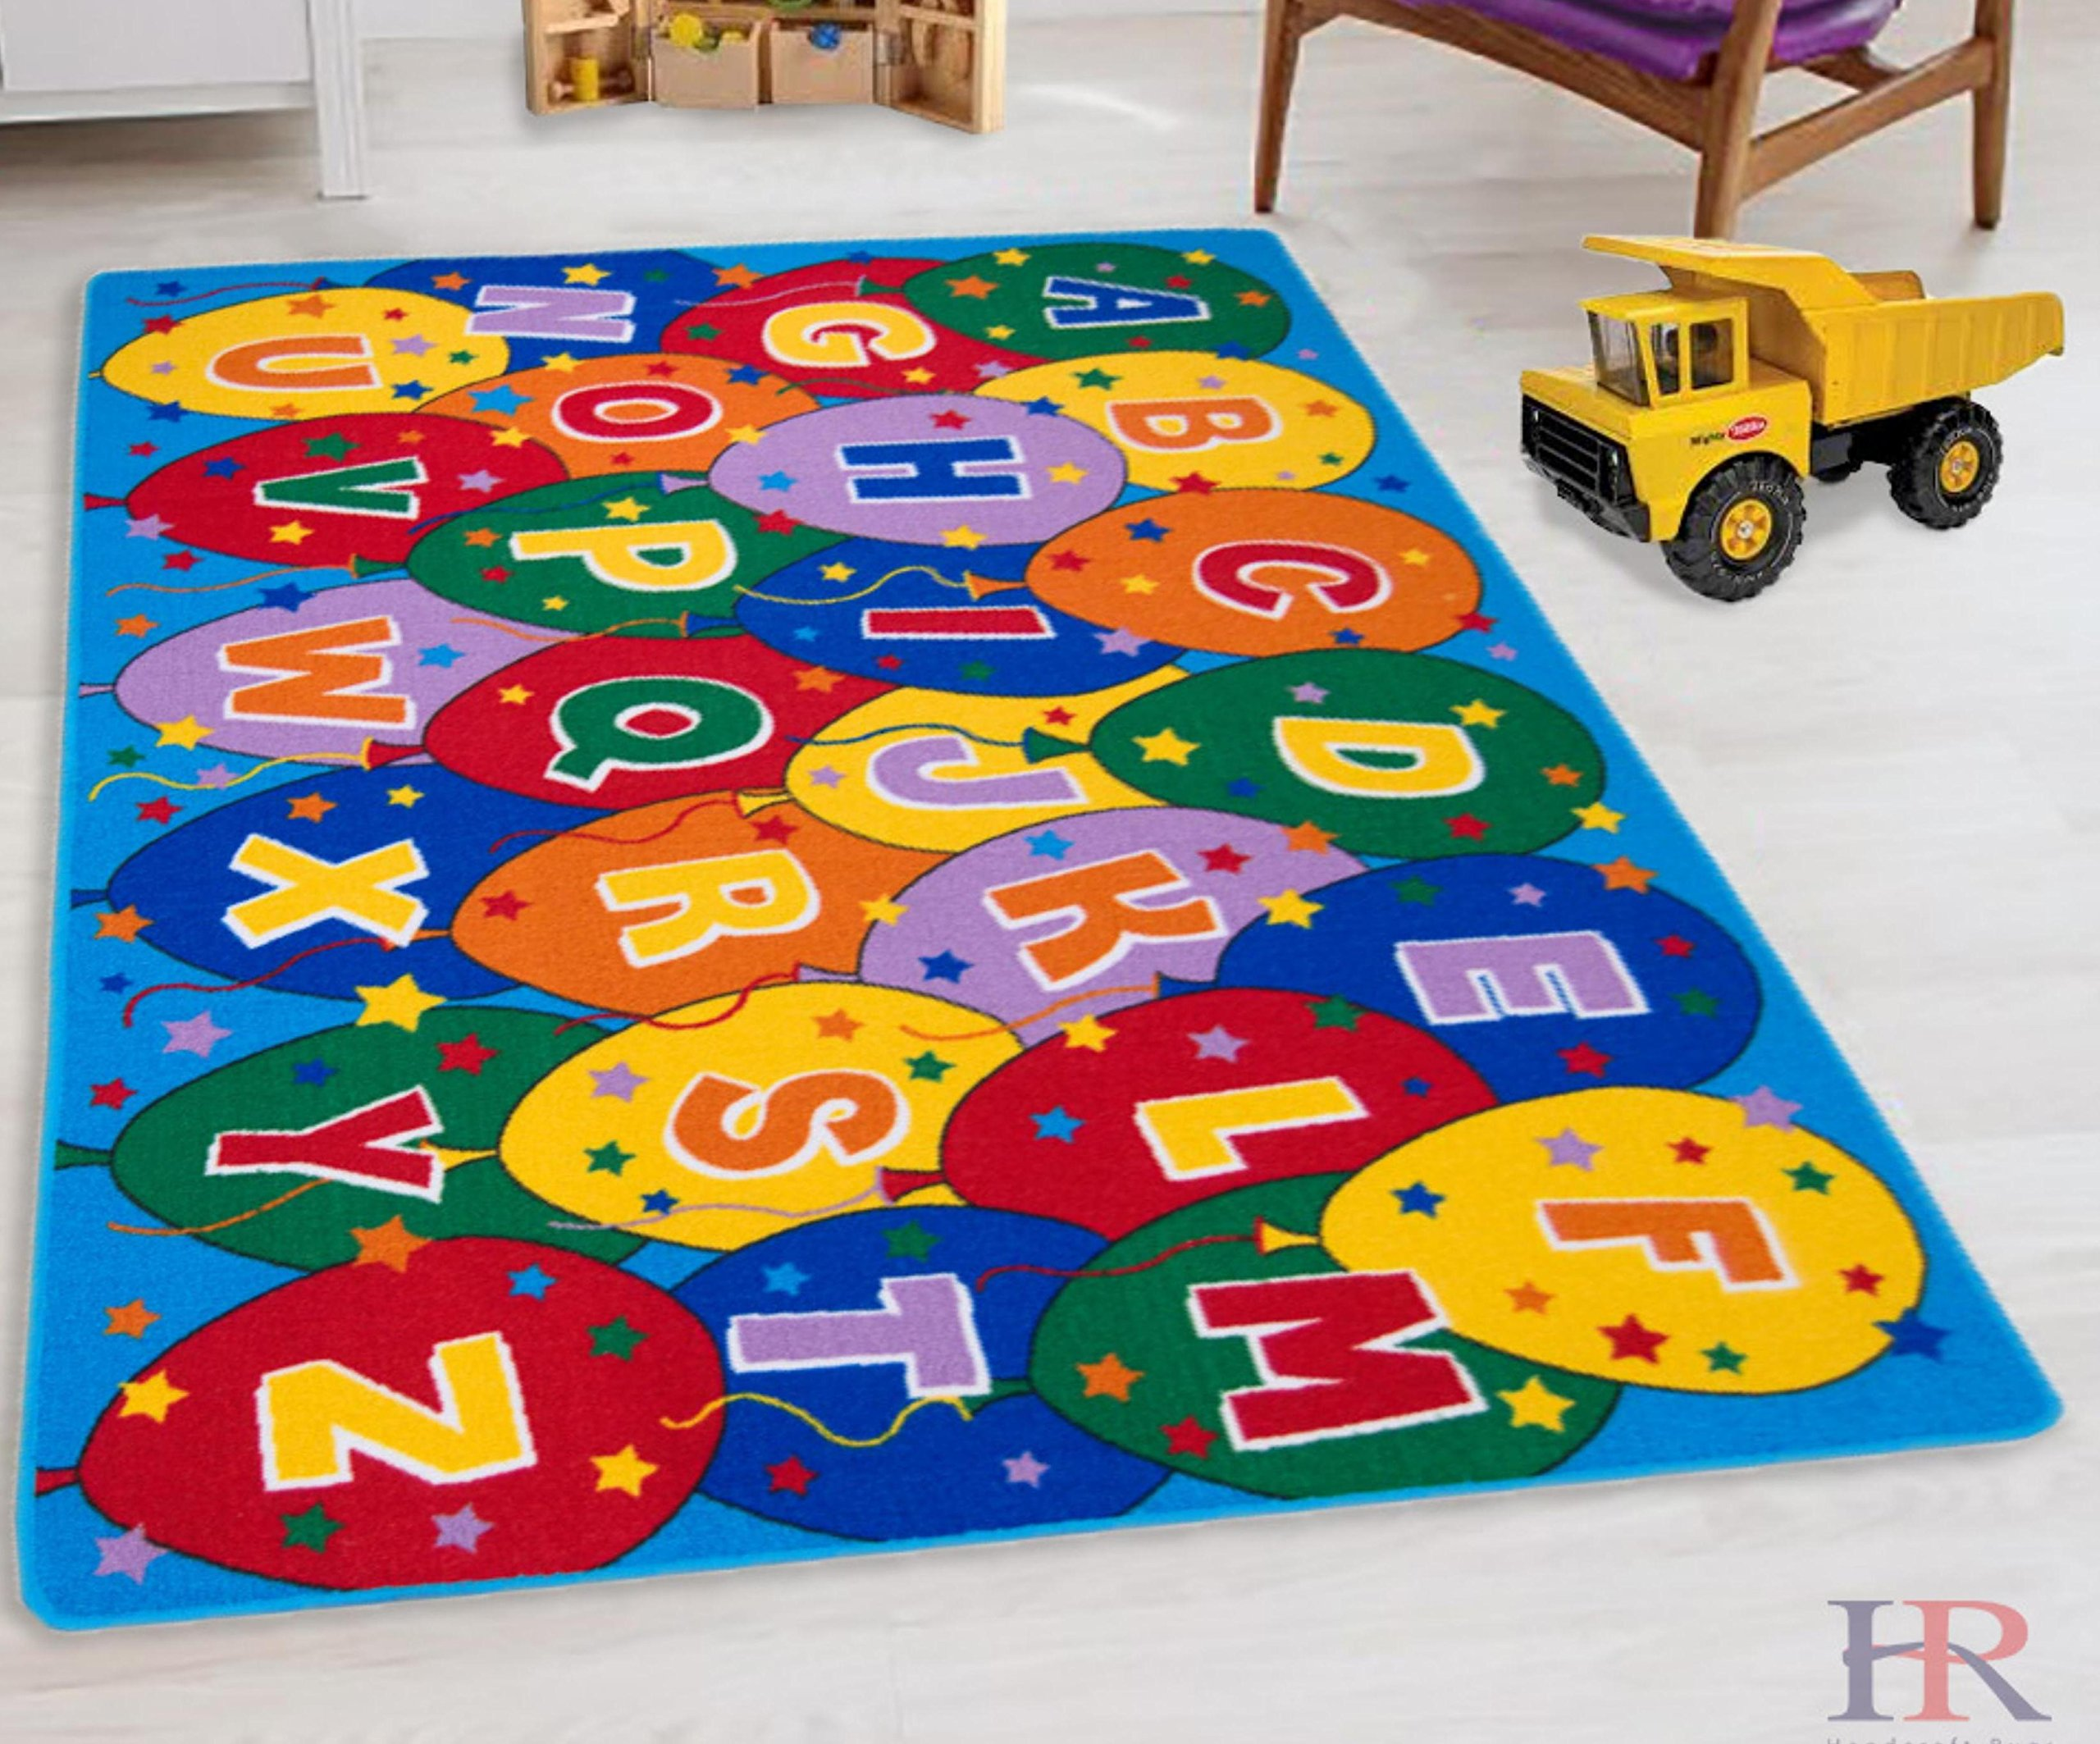 Teaching ABC Balloons Party accent Kids Educational play mat For School/Classroom / Kids Room/Daycare/ Nursery Non-Slip Gel Back Rug Carpet-(5 by 7 feet)